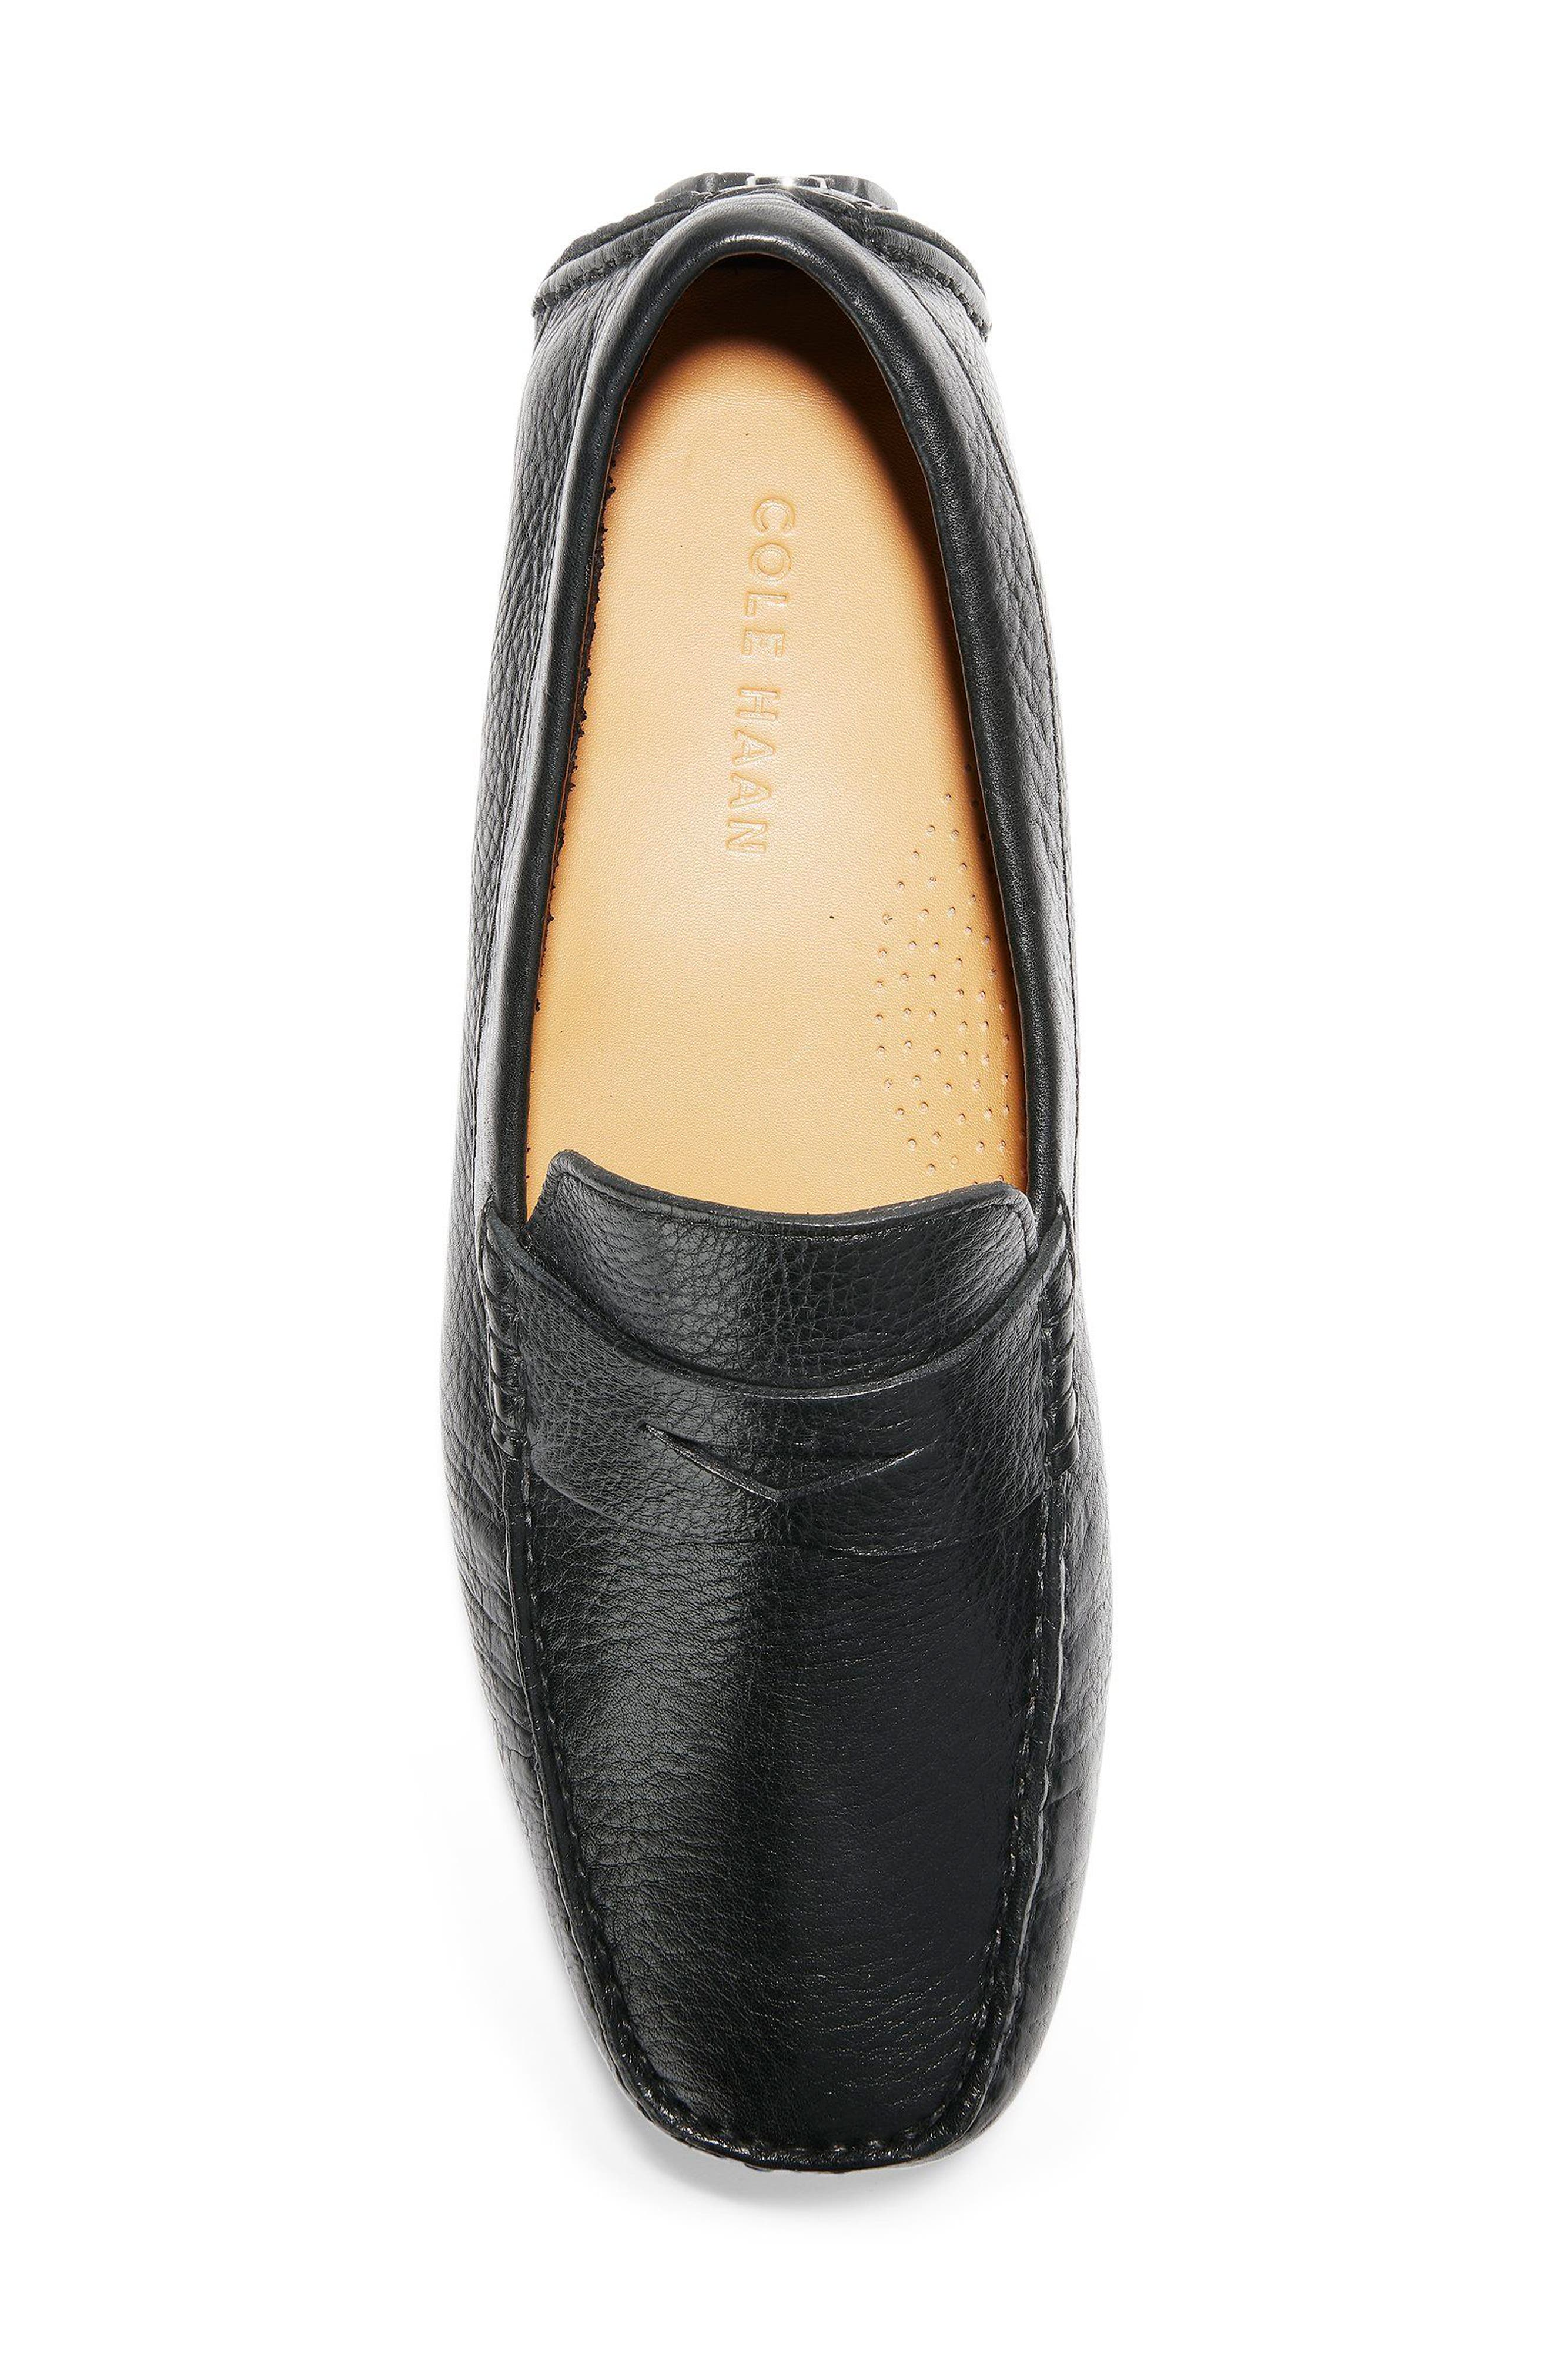 COLE HAAN, 'Howland' Penny Loafer, Alternate thumbnail 5, color, BLACK TUMBLED